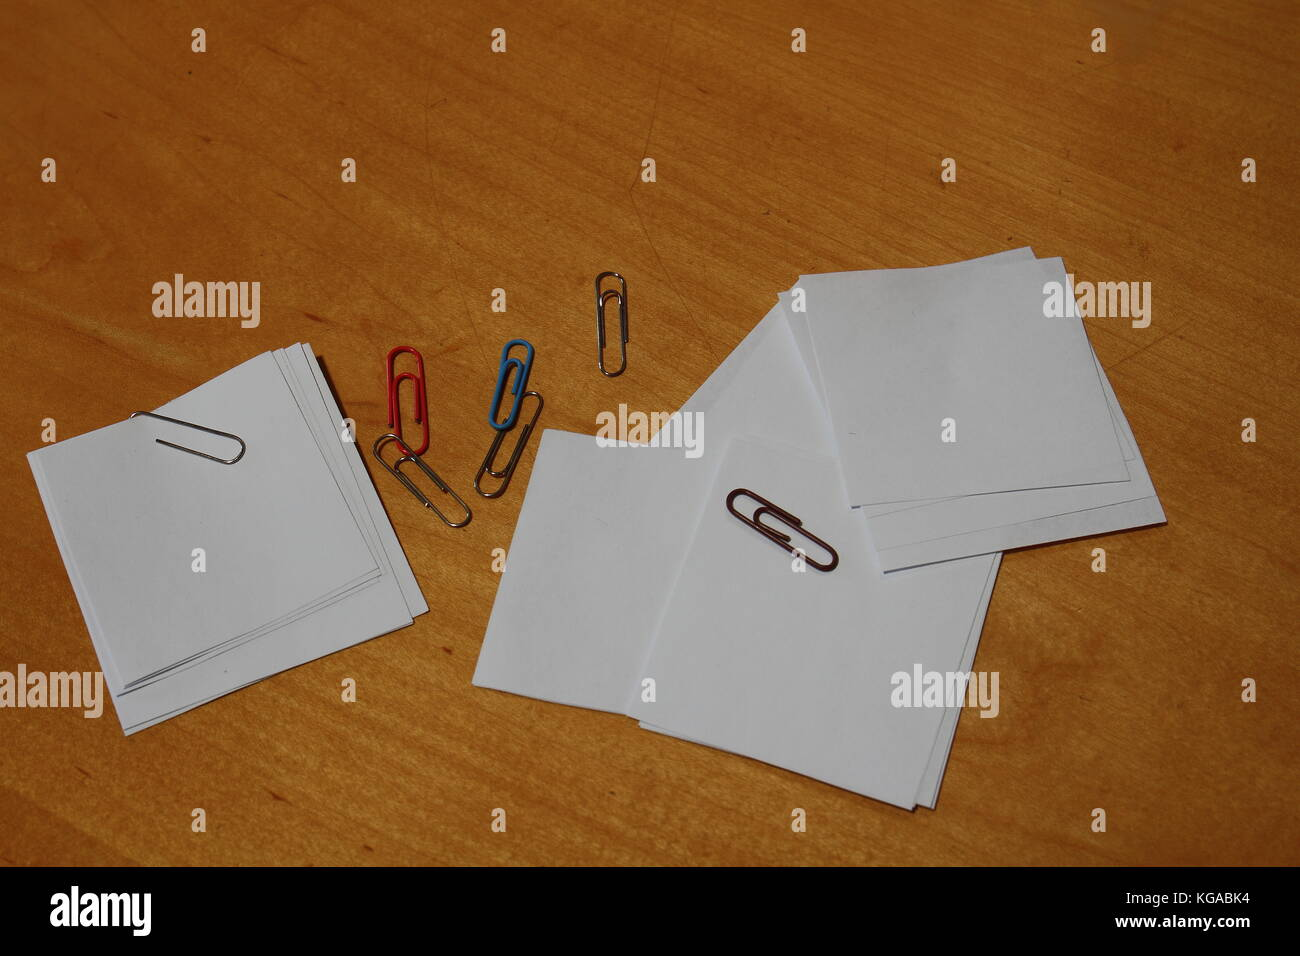 Paper clips and notes on a desk viewed from above with copy space - Stock Image